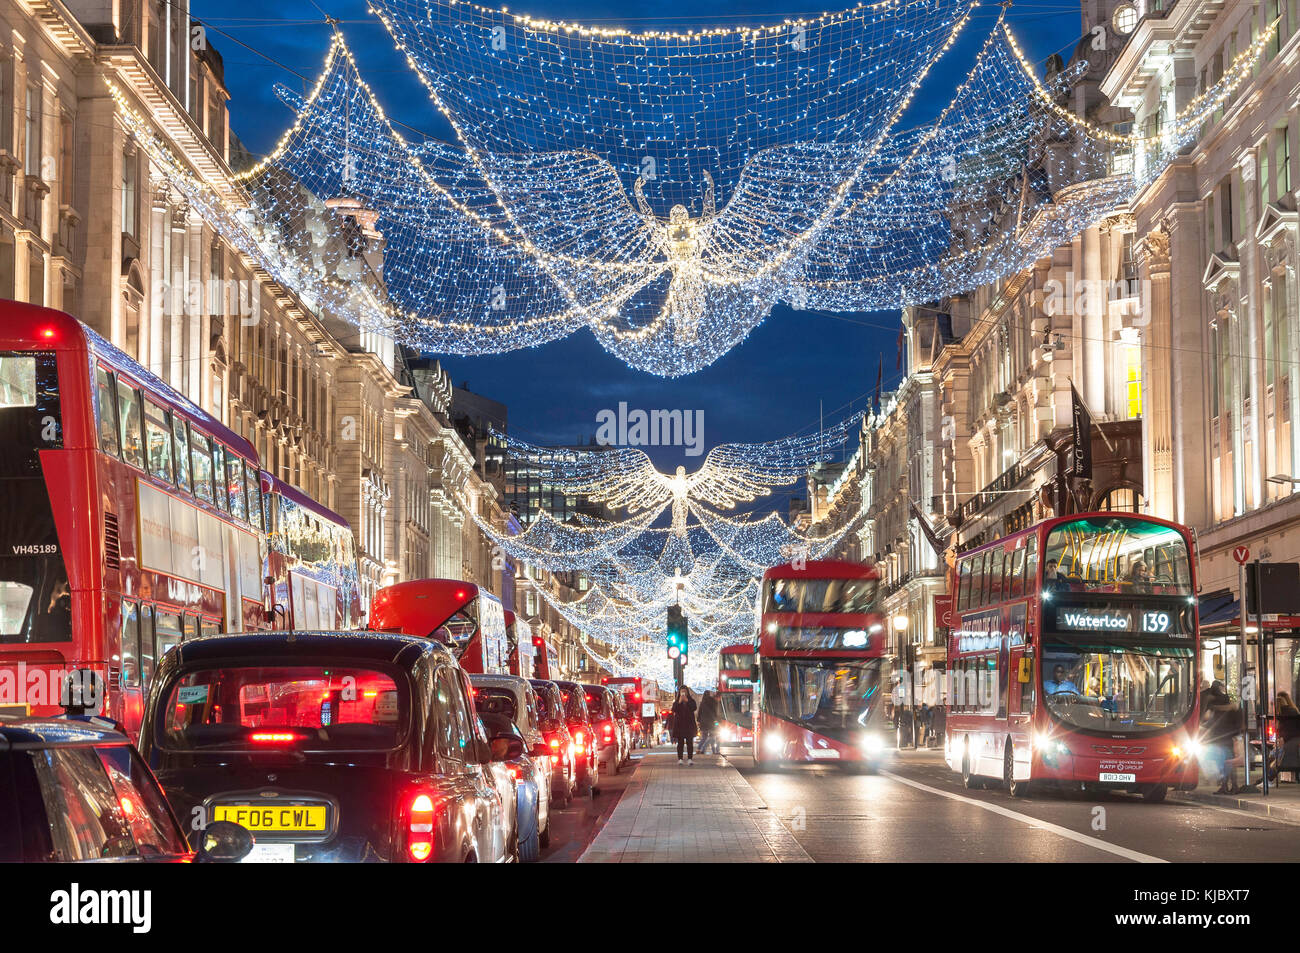 Christmas lights at dusk in Regent Street, Soho, City of Westminster, Greater London, England, United Kingdom - Stock Image